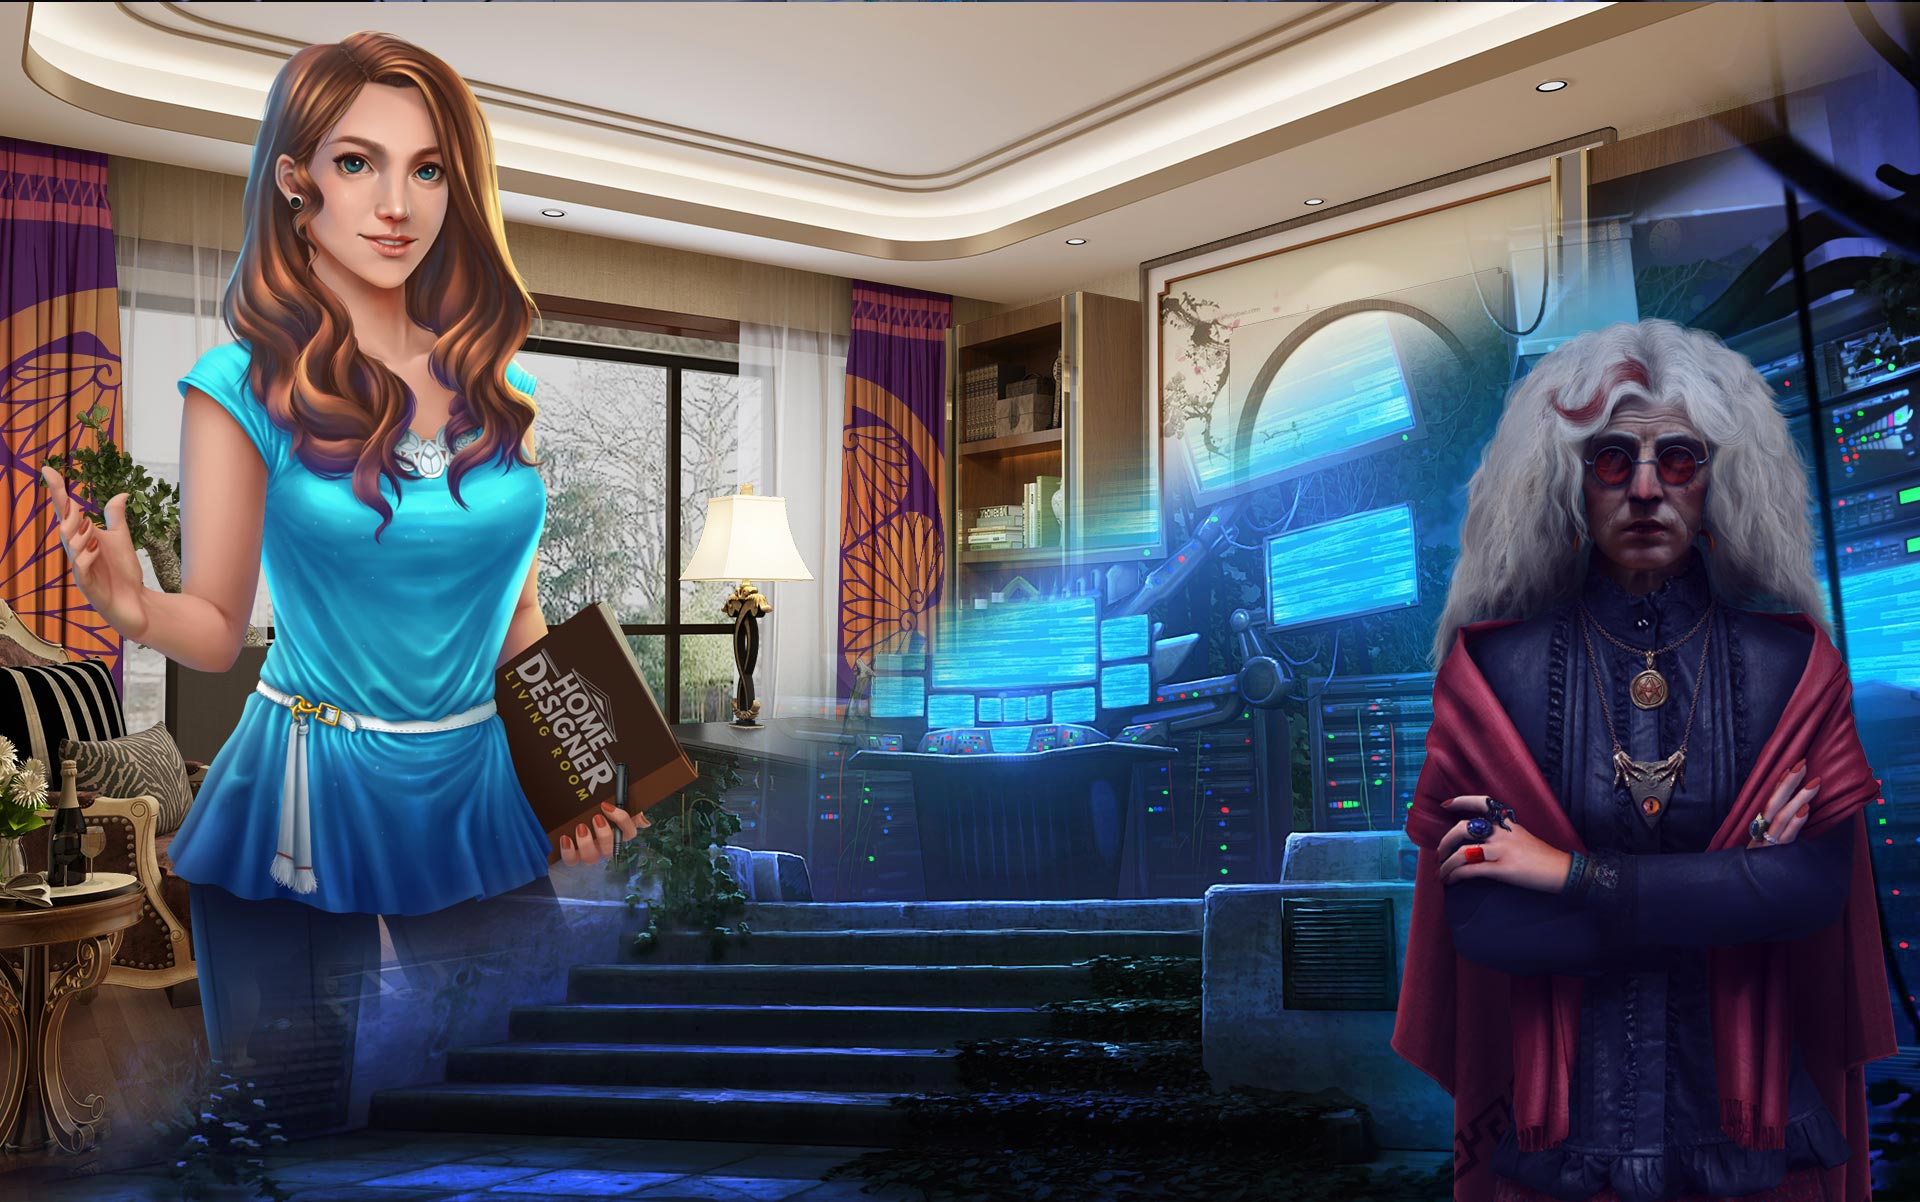 3 Hidden Object Games You'll Feel Right at Home With - GameHouse